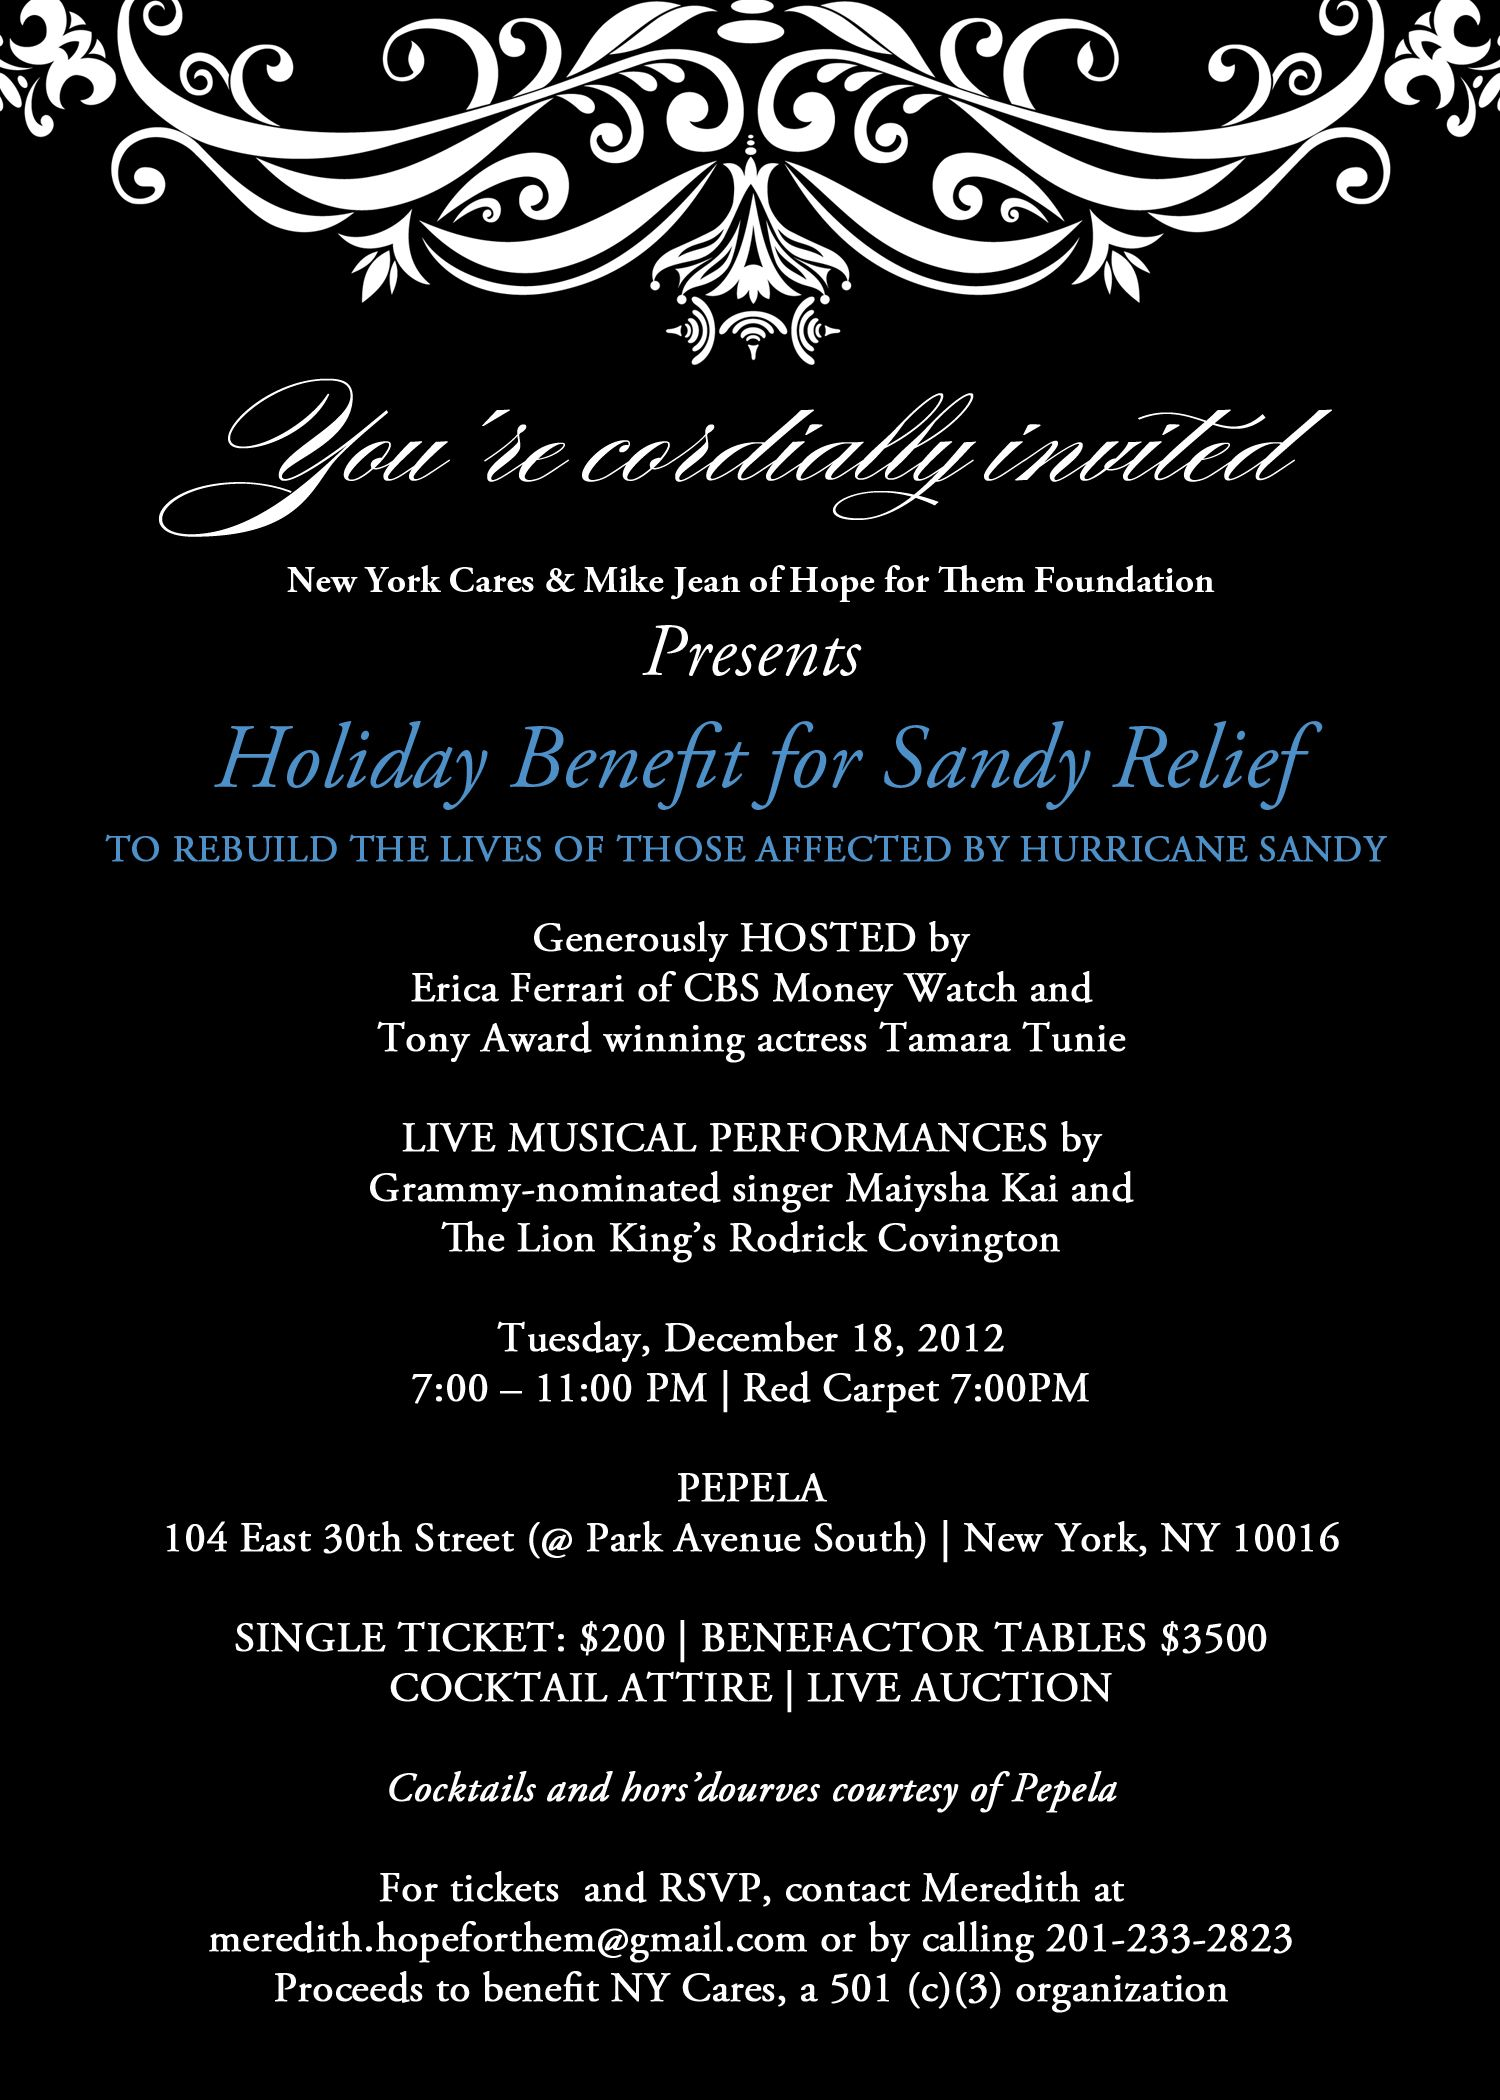 Hope For Them Foundation Partners with New York Cares to Host Holiday Fundraiser, In Efforts to Rebuild The Lives of Those Affected by Hurricane Sandy. Tues Dec 18, 7PM at Pepela  http://hopeforthemholidaysandyrelief.charityhappenings.org/